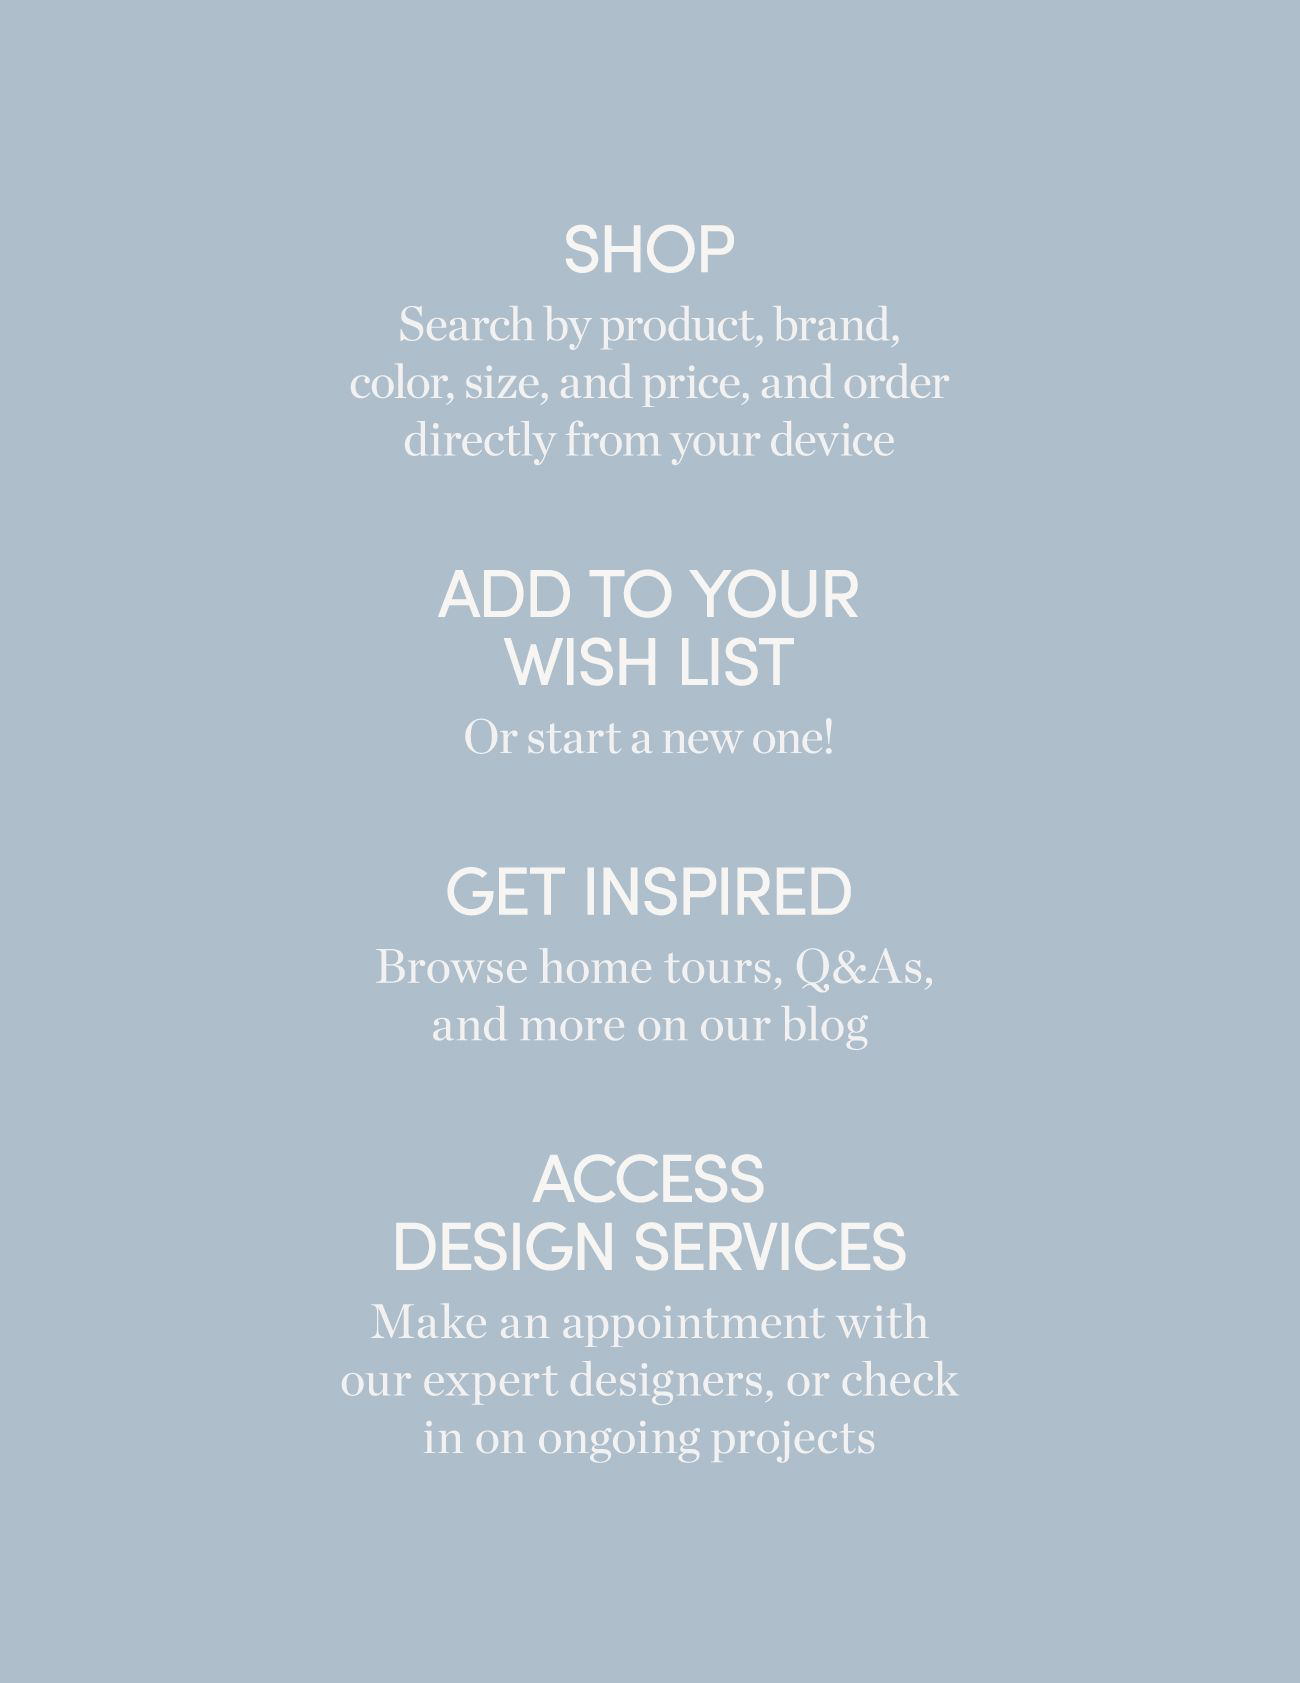 Shop | Add to Wish List | Get Inspired | Access Design Services